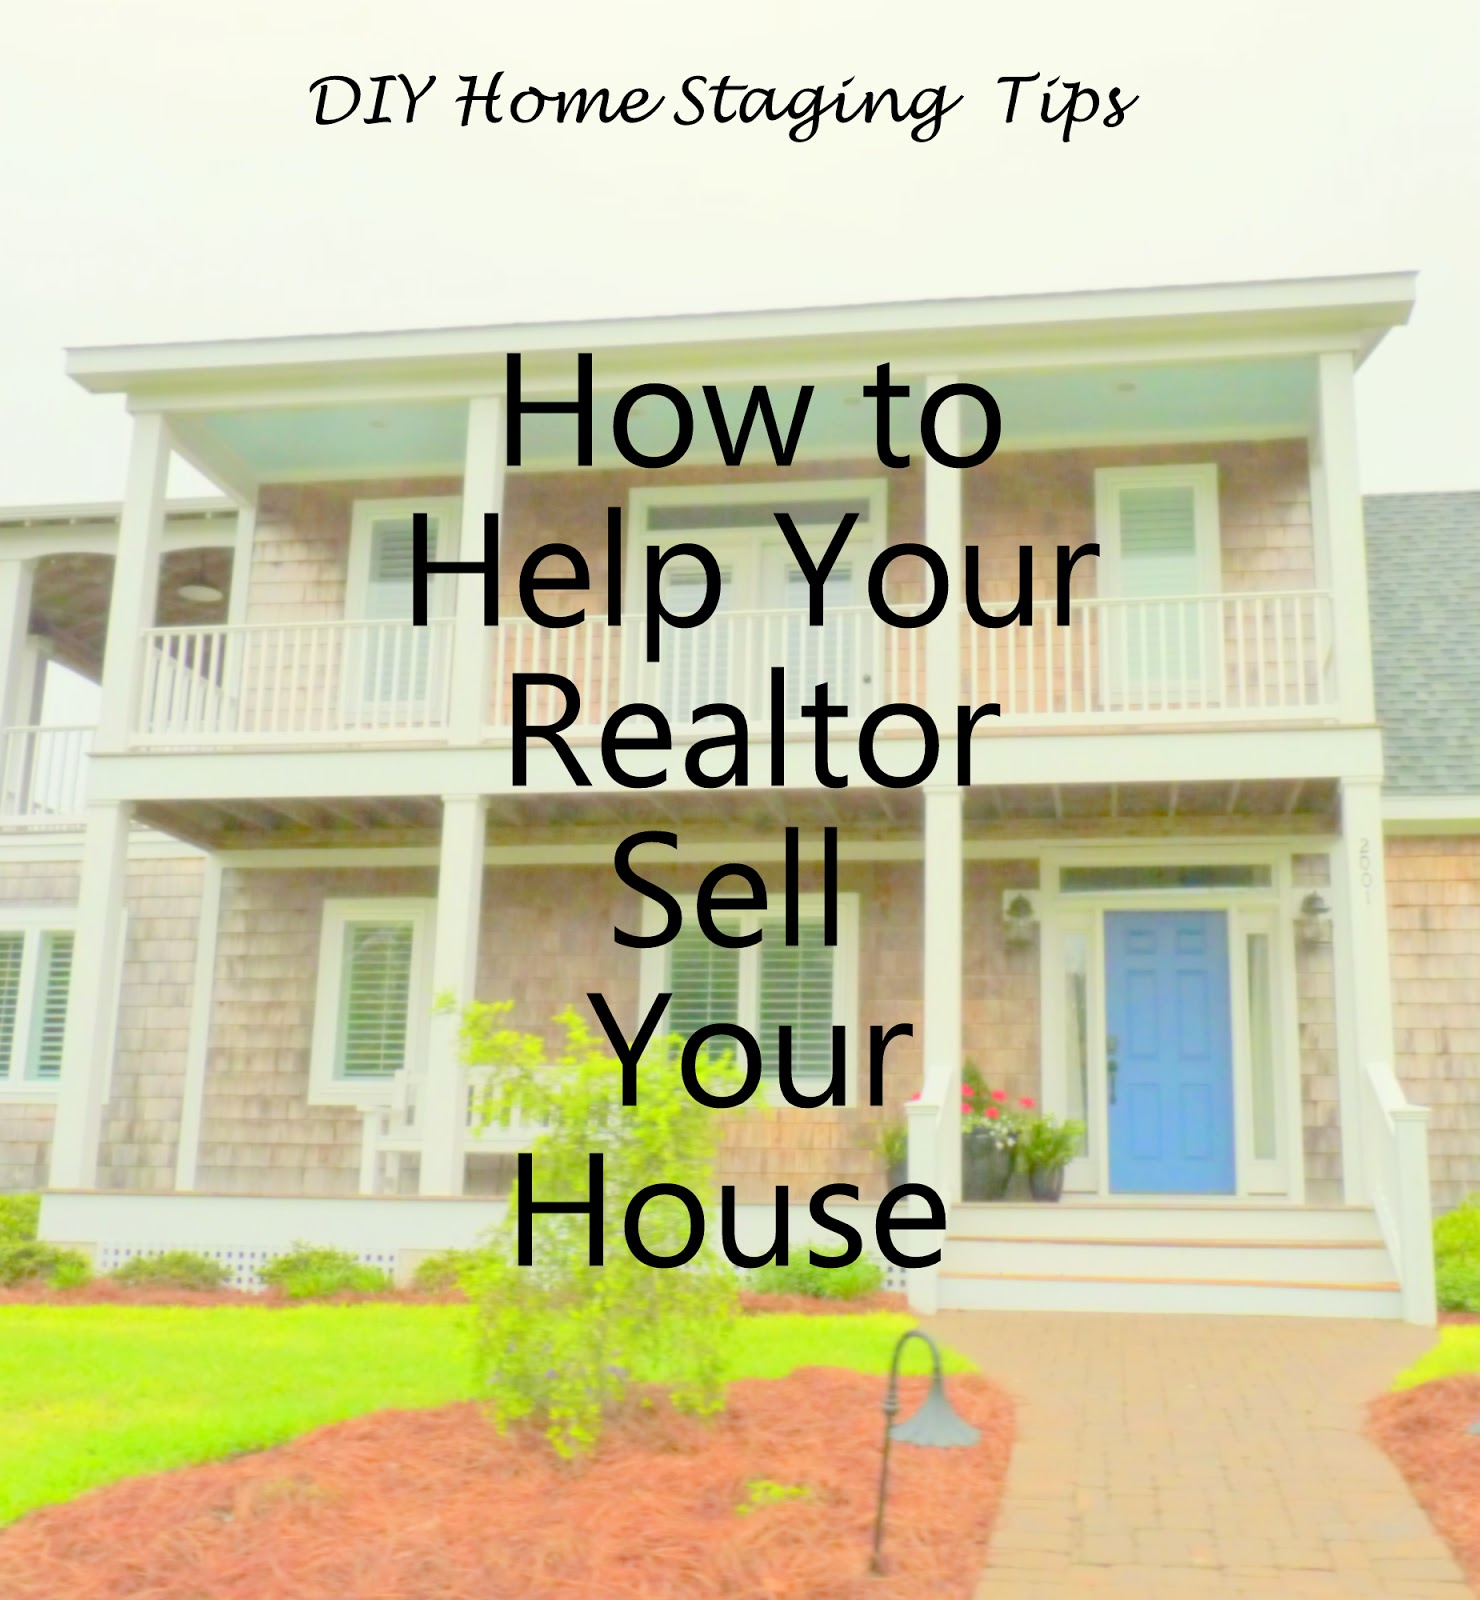 DIY Home Staging Tips: How To Help Your Realtor Sell Your Home